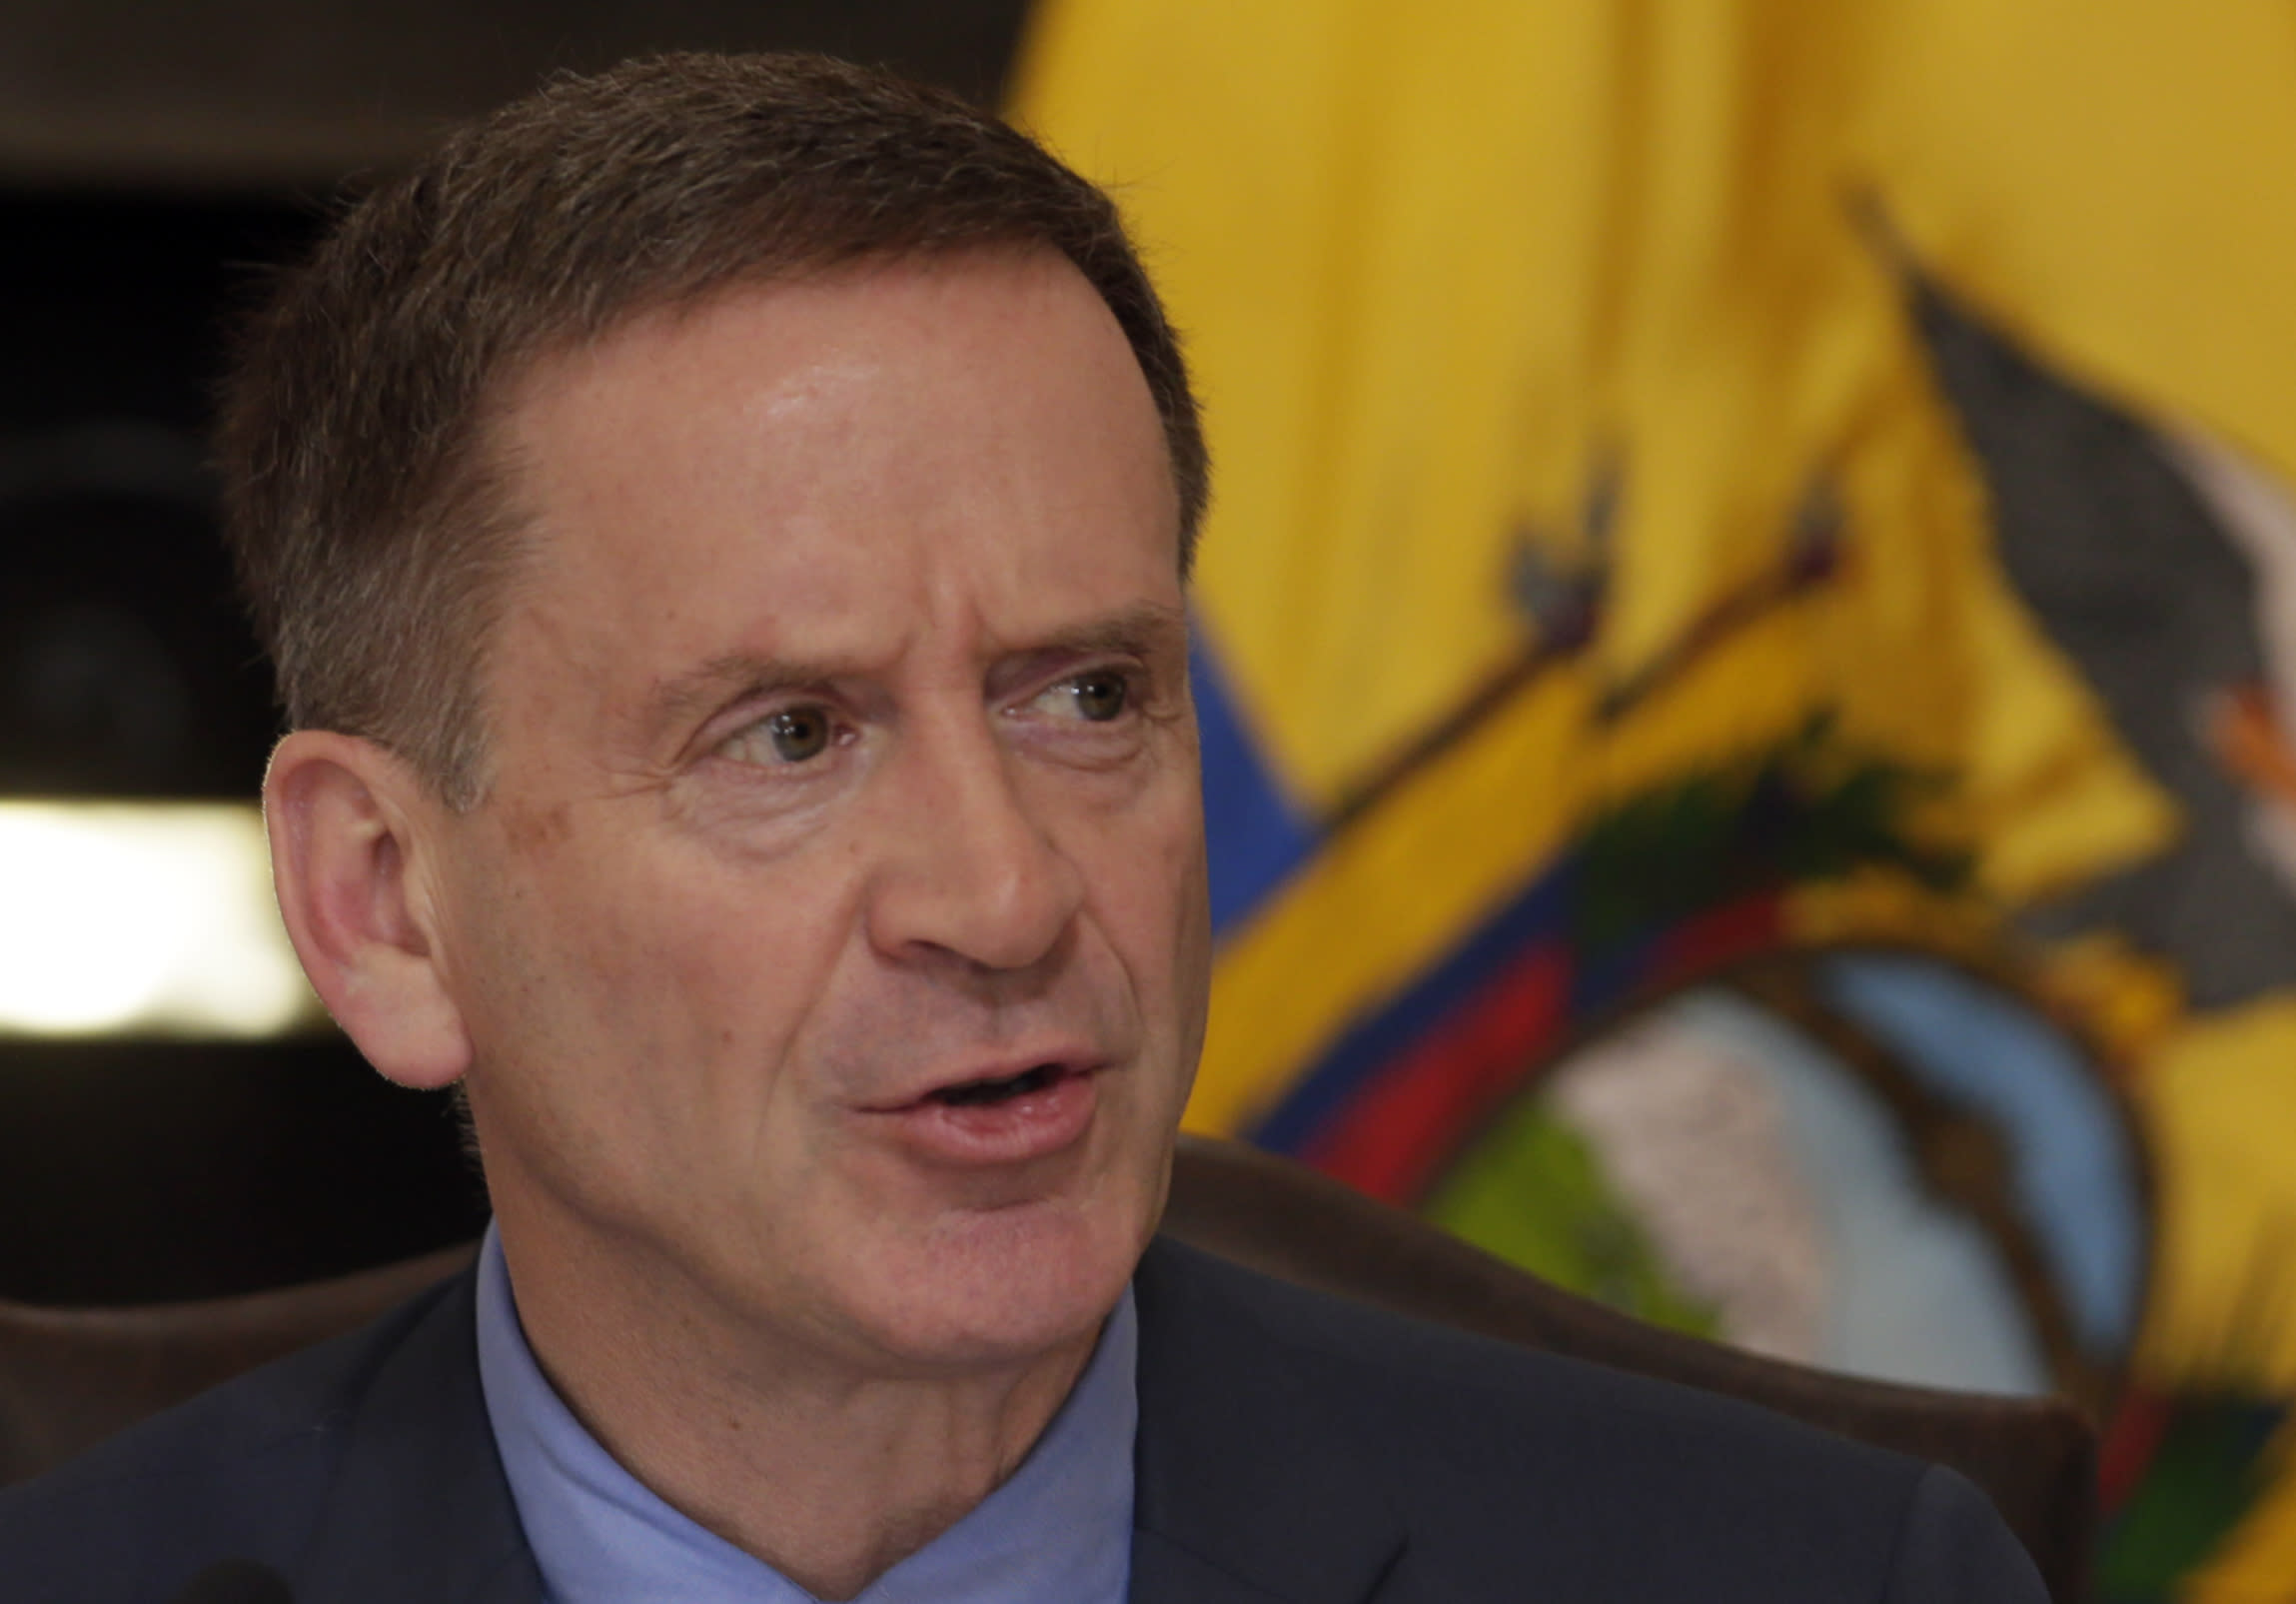 Mark Green, USAID administrator, talks after a signing ceremony, in Quito, Ecuador, Wednesday, May 15, 2019. USAID returns to Ecuador for the first time since being expelled from the country in 2014 by former President Rafael Correa. (AP Photo/Dolores Ochoa)